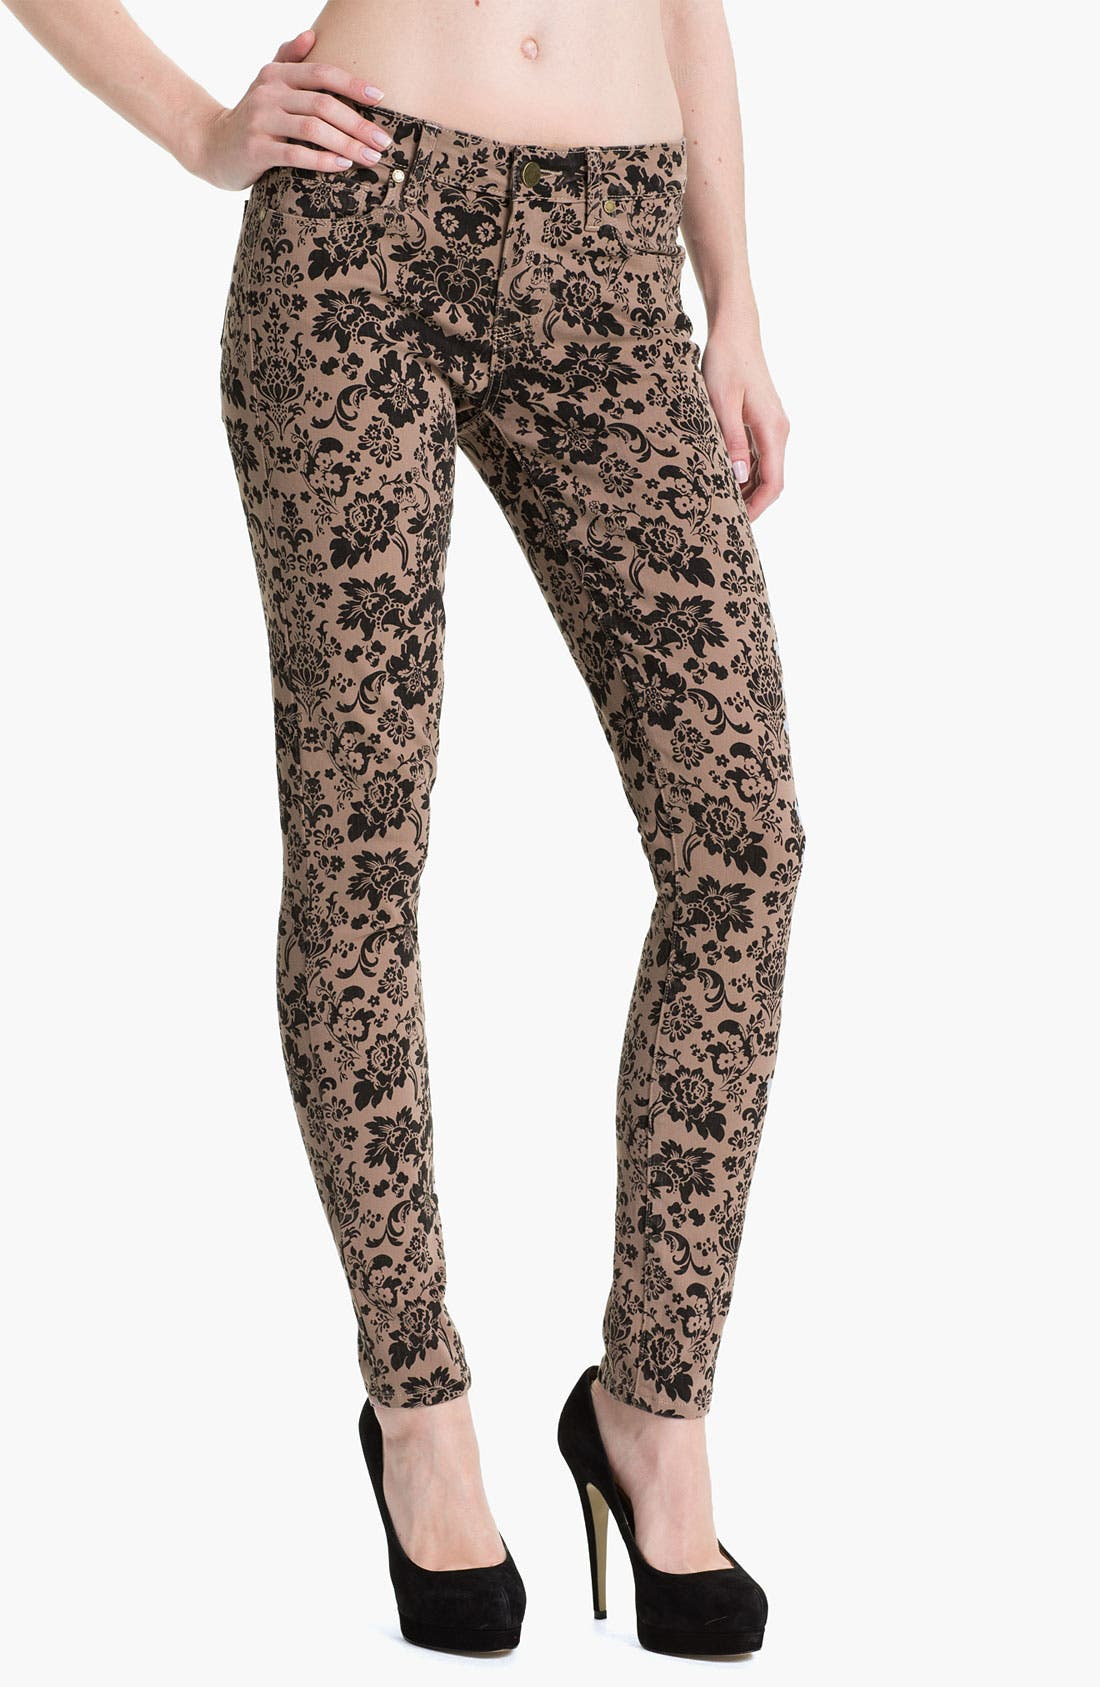 Alternate Image 1 Selected - Paige Denim 'Verdugo' Print Skinny Jeans (Chai/Black)